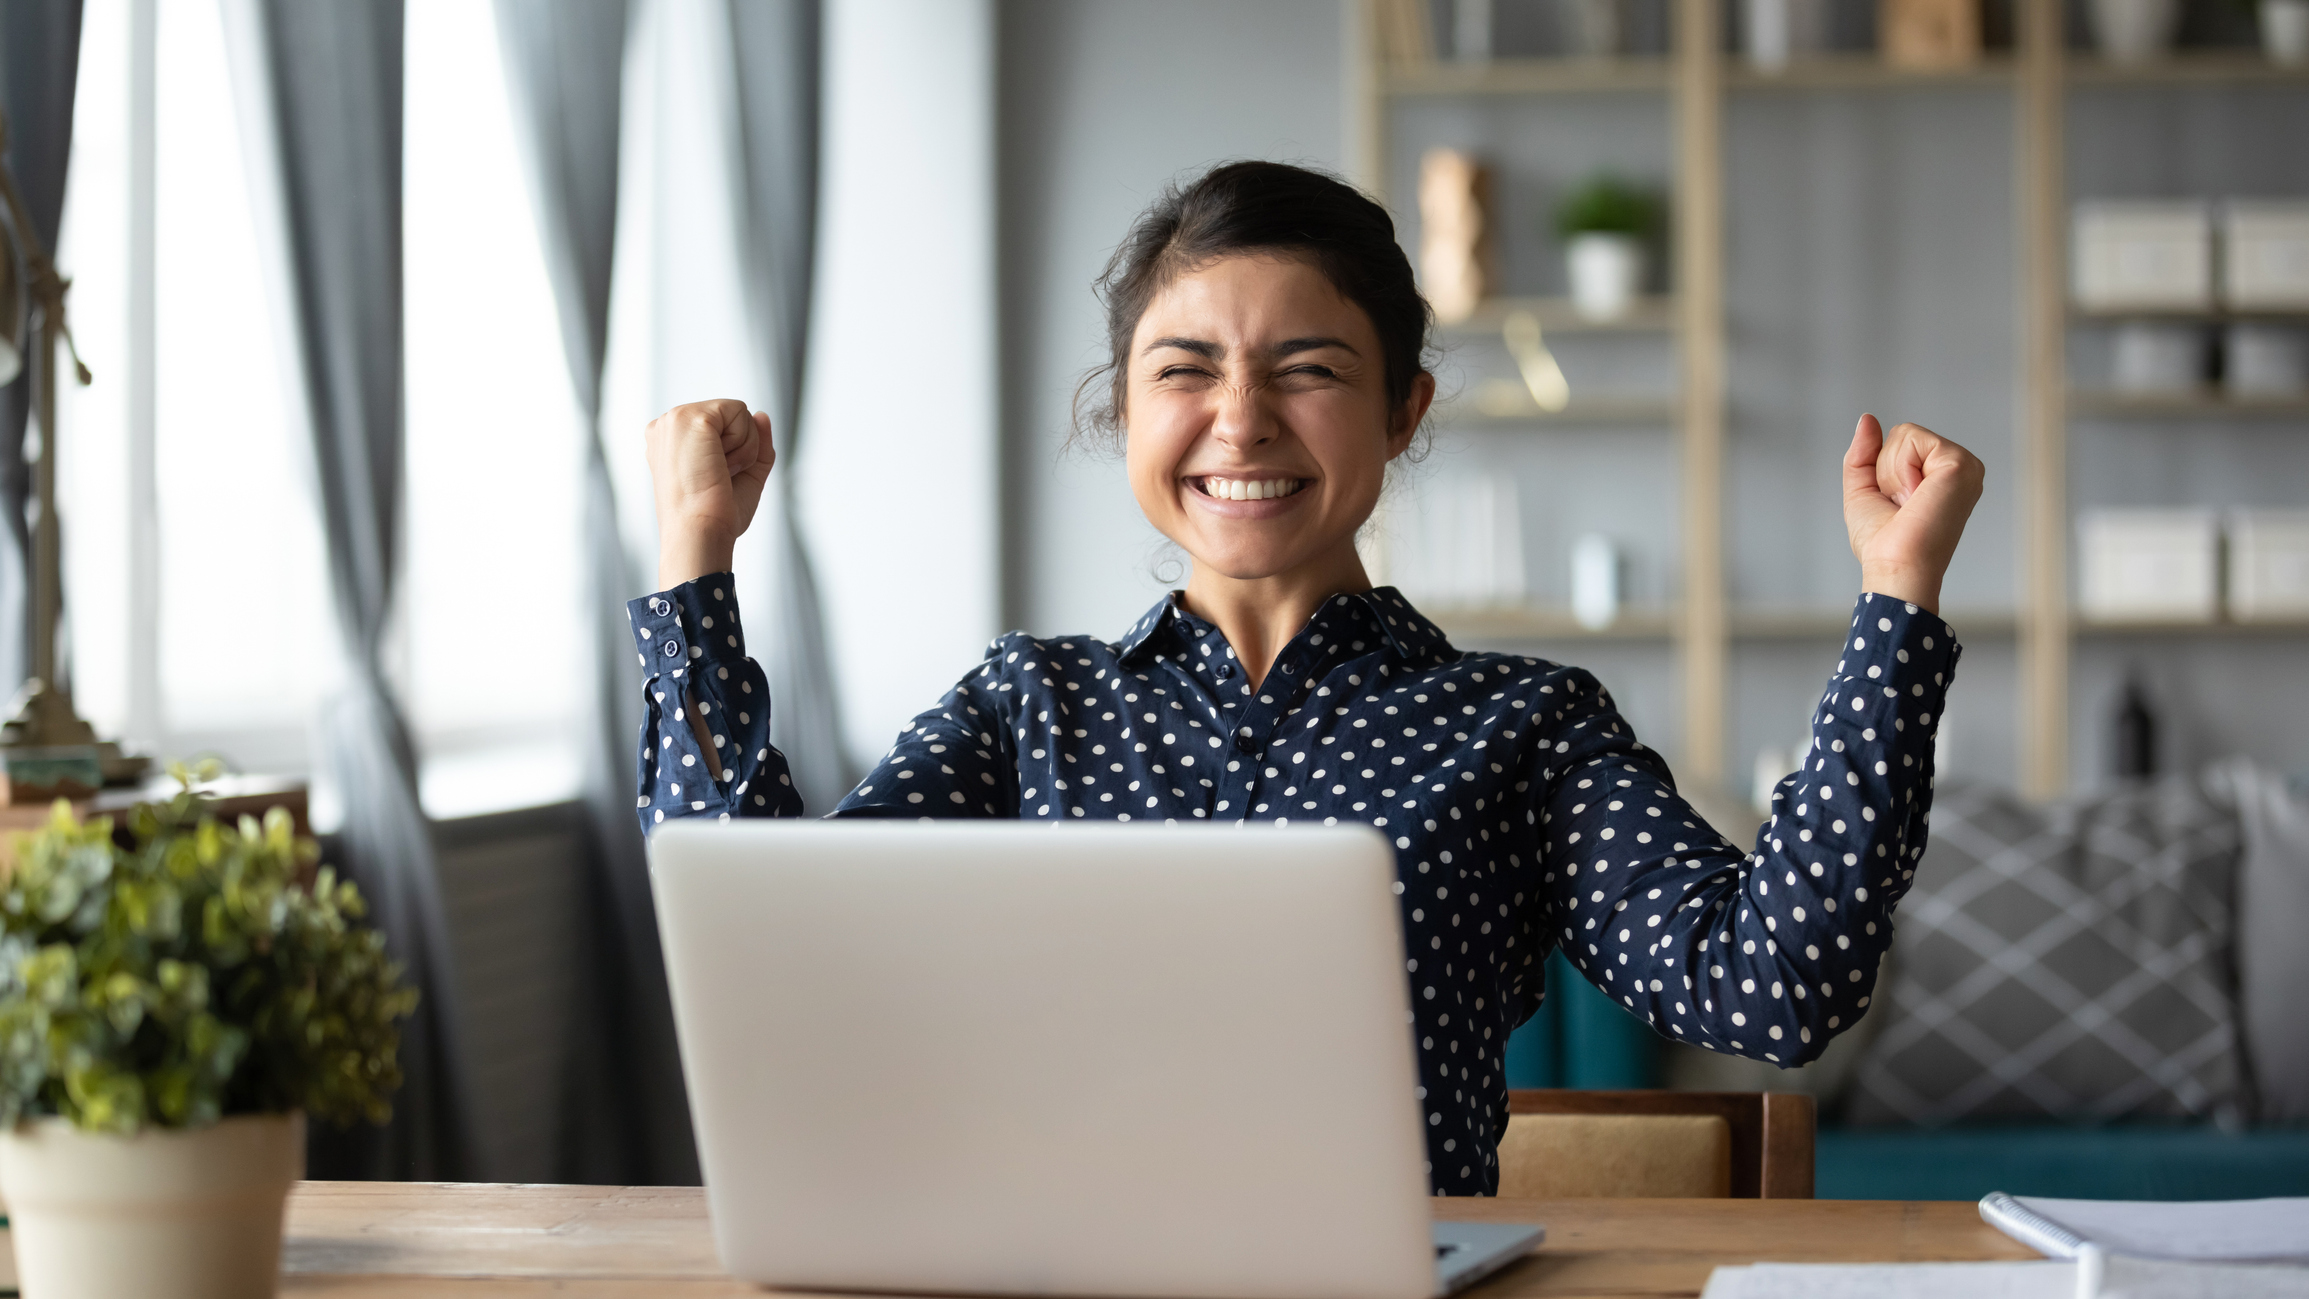 The biggest perk for working women: Cognitive reserves